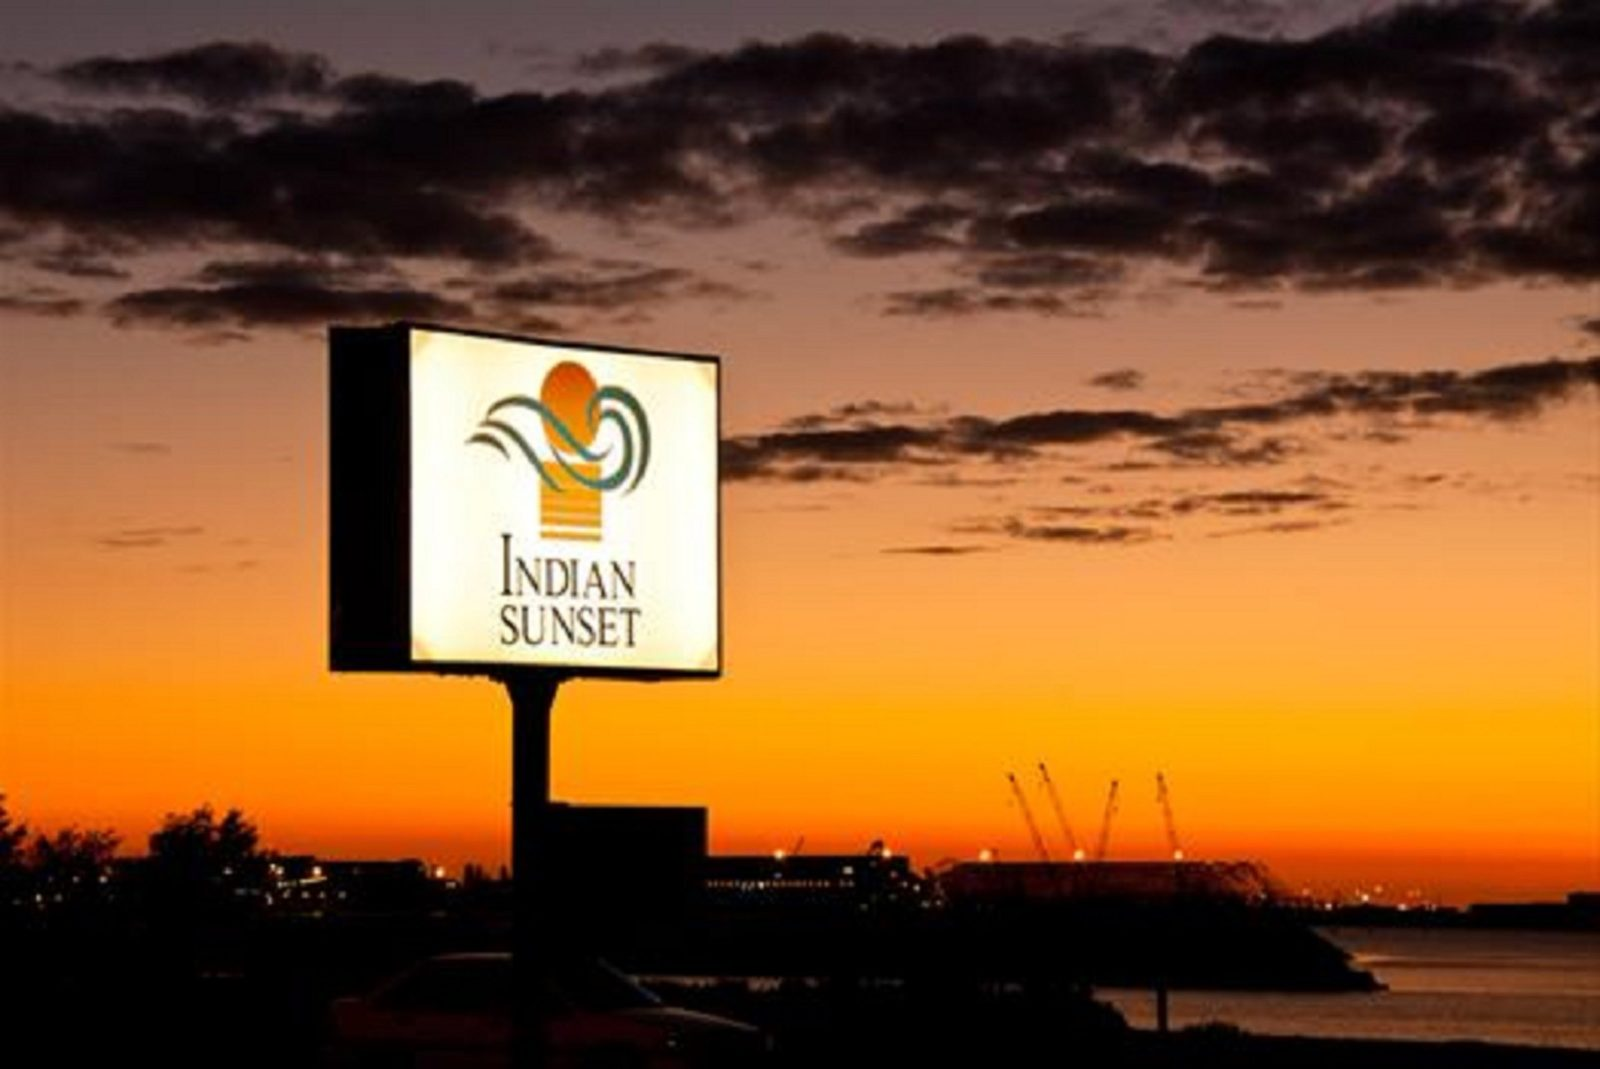 Indian Sunset Restaurant, Geraldton, Western Australia